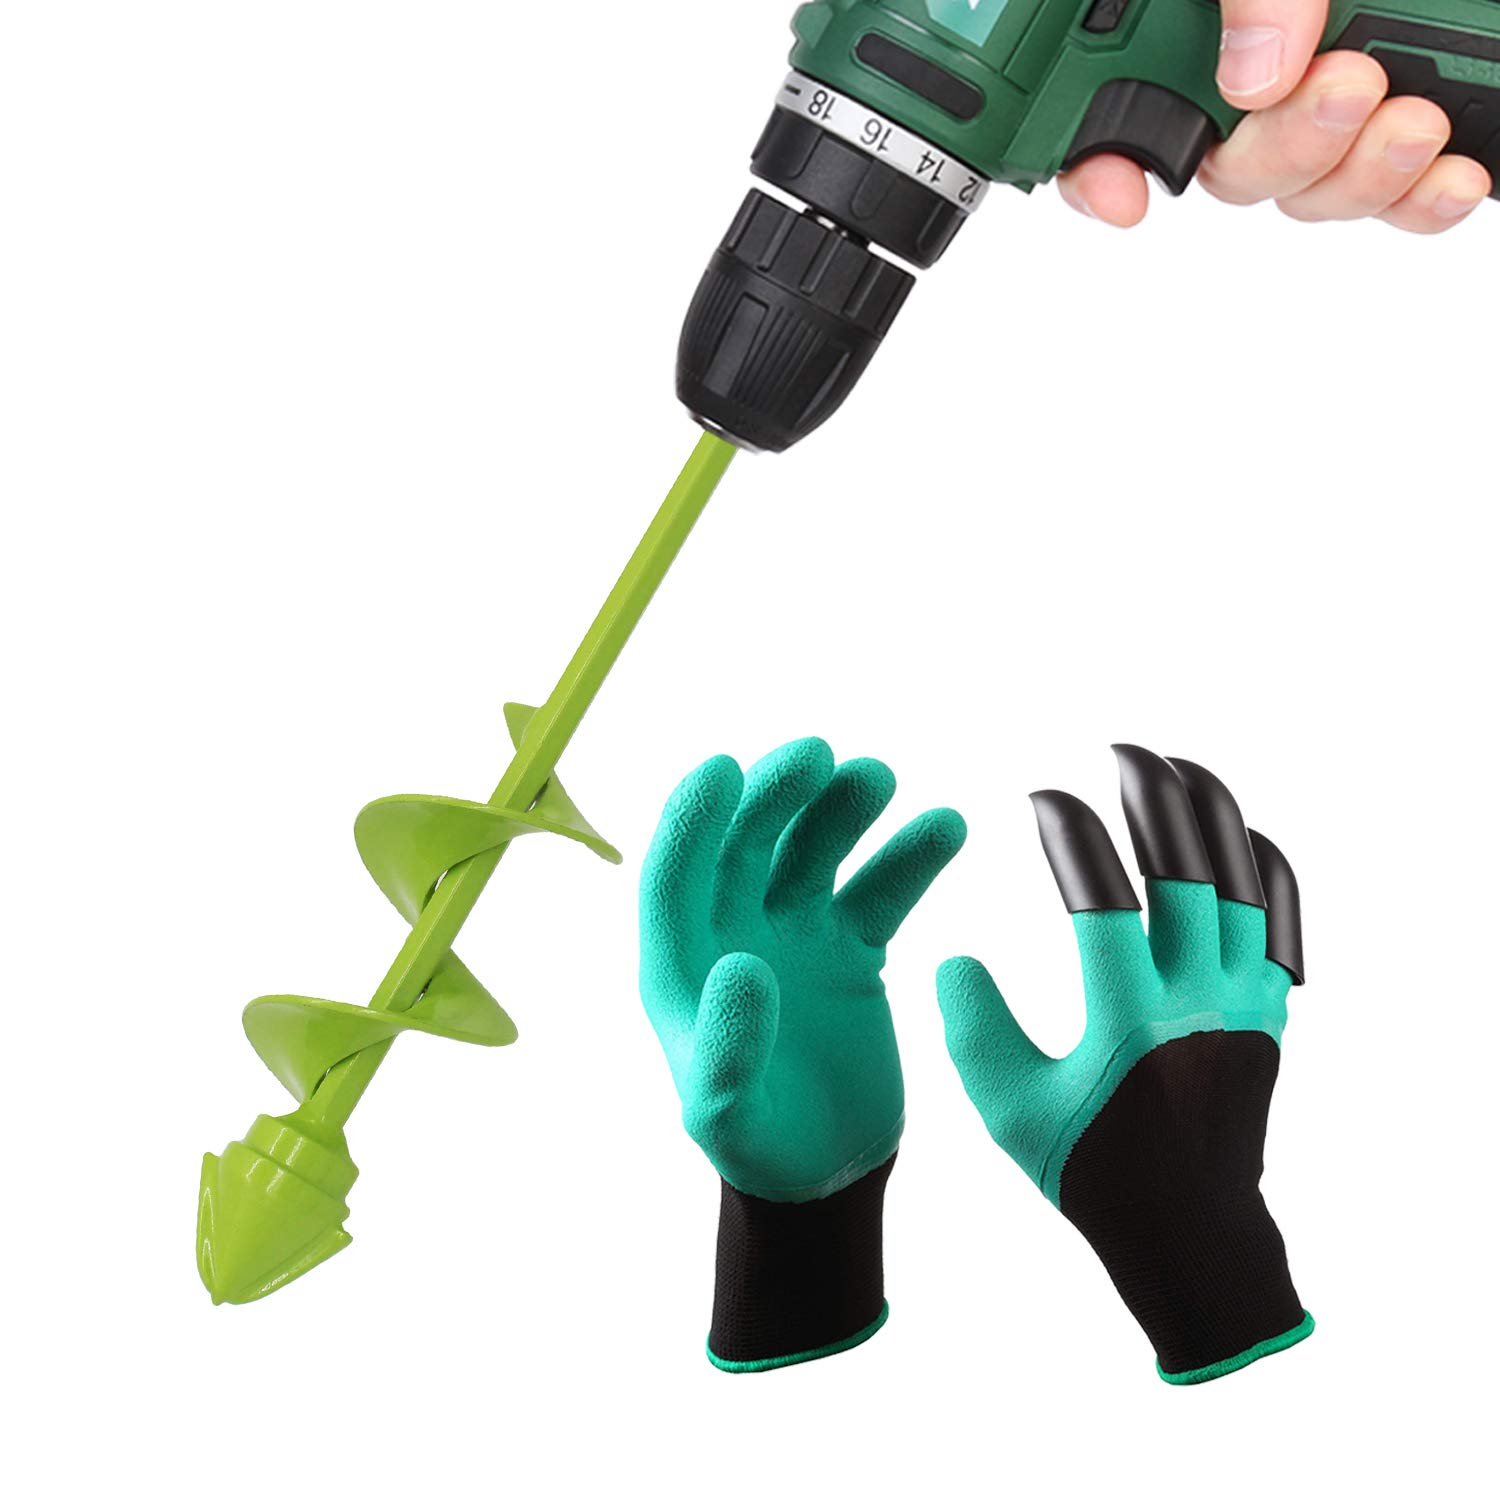 UGarden Bulb & Bedding Plant Auger, with Garden Genie Gloves, Garden Plant Flower Bulb Auger 2'' x 9'' Rapid Planter, Non-Slip Hex Drive fits Any 3/8-inch Drill. (3 Circles) by UGarden